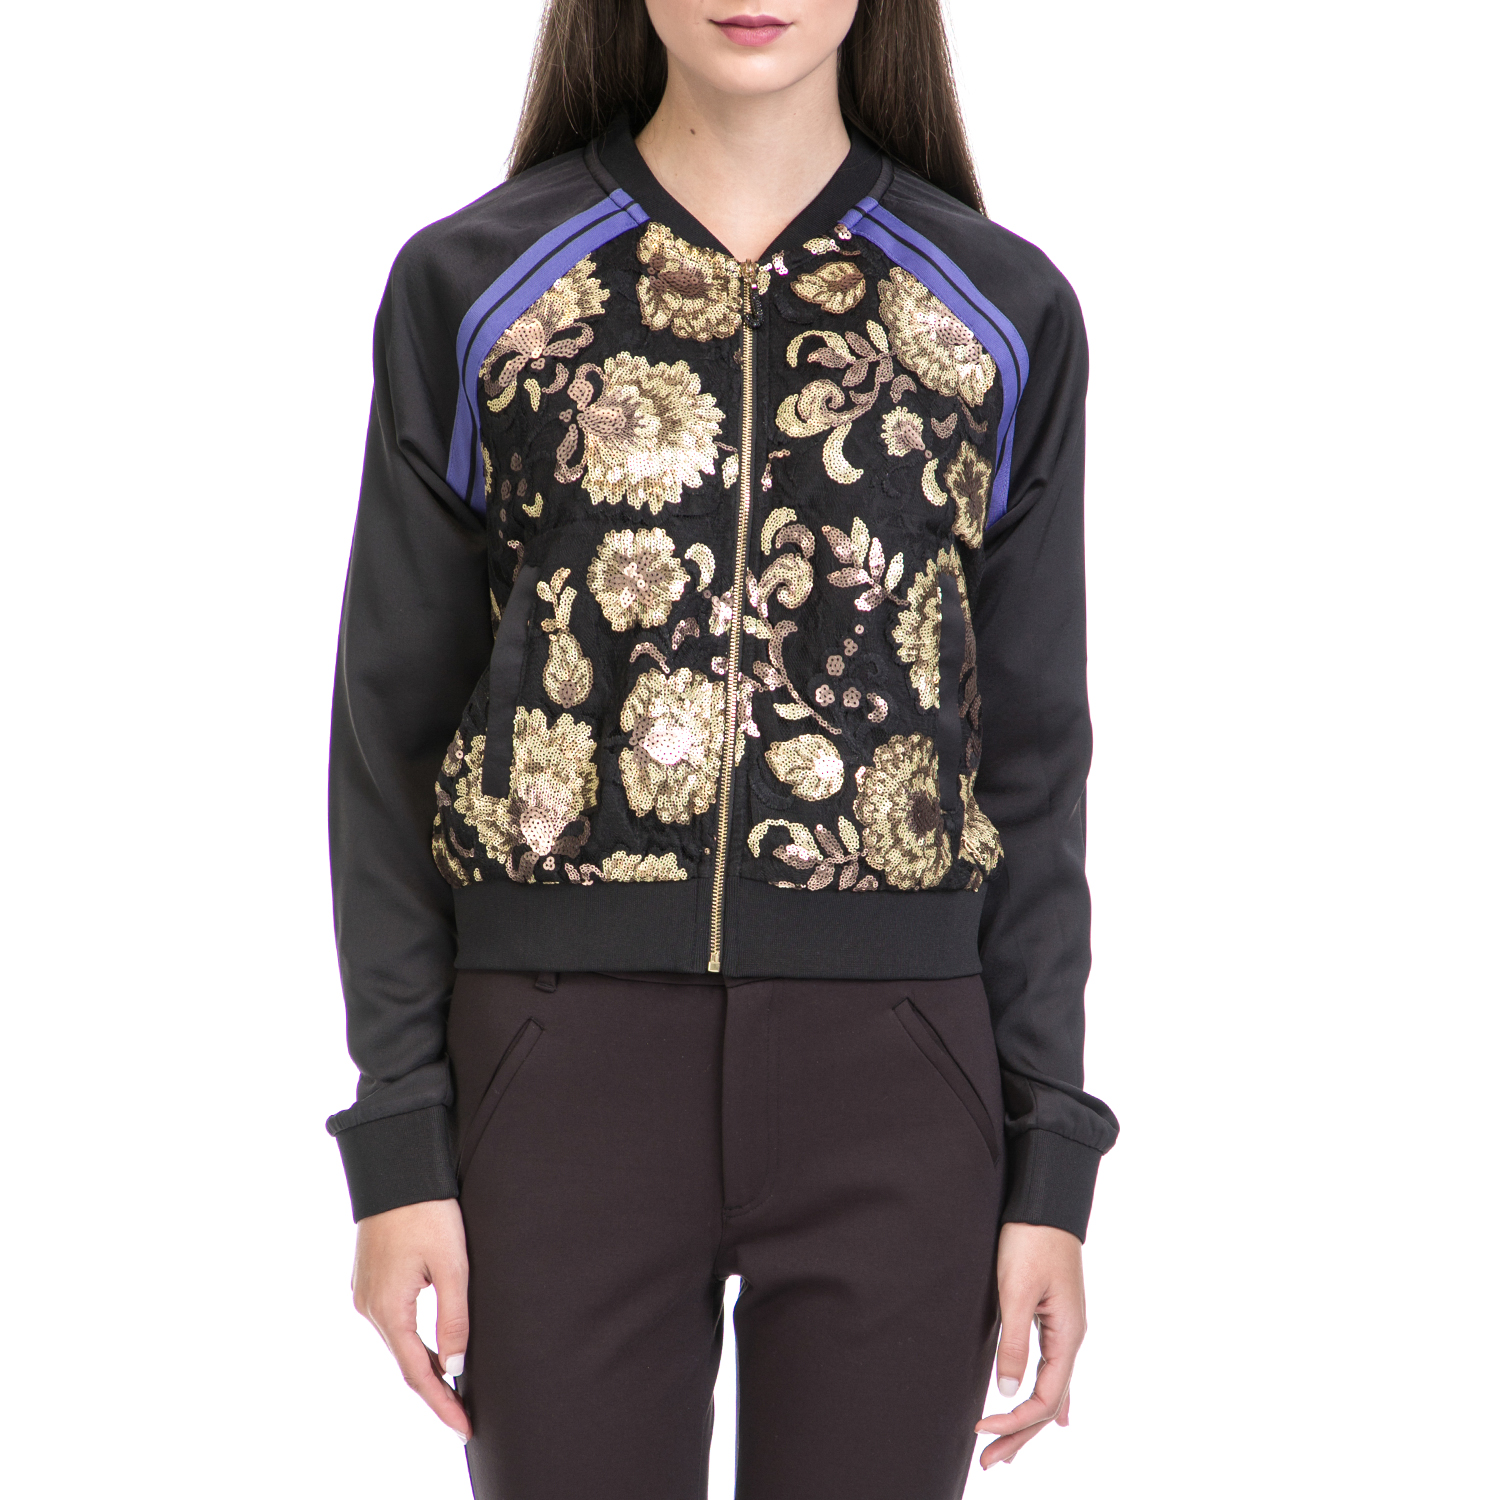 JUICY COUTURE – Γυναικείο τζάκετ JUICY COUTURE μαύρο-χρυσό